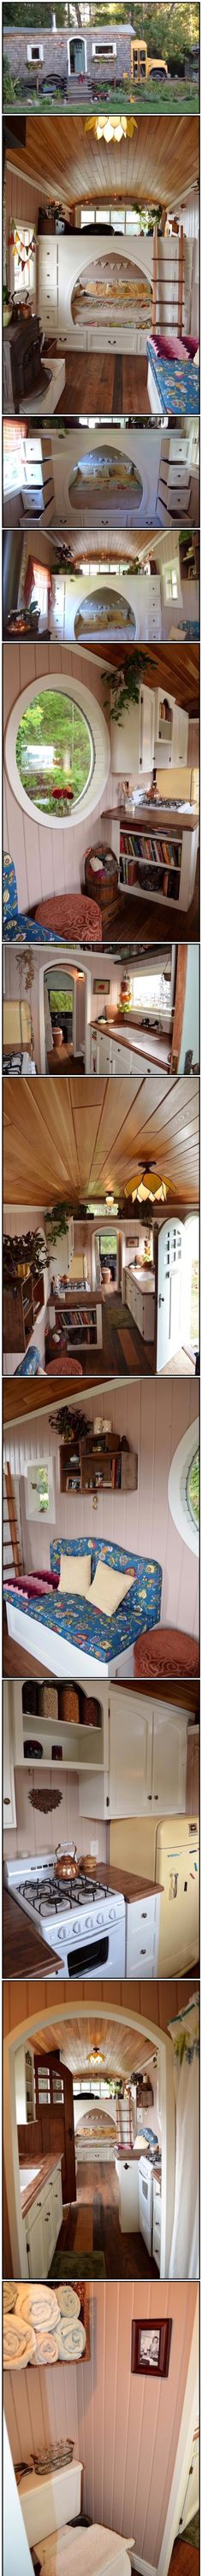 Yes yes yes!!! Tiny house love! <3